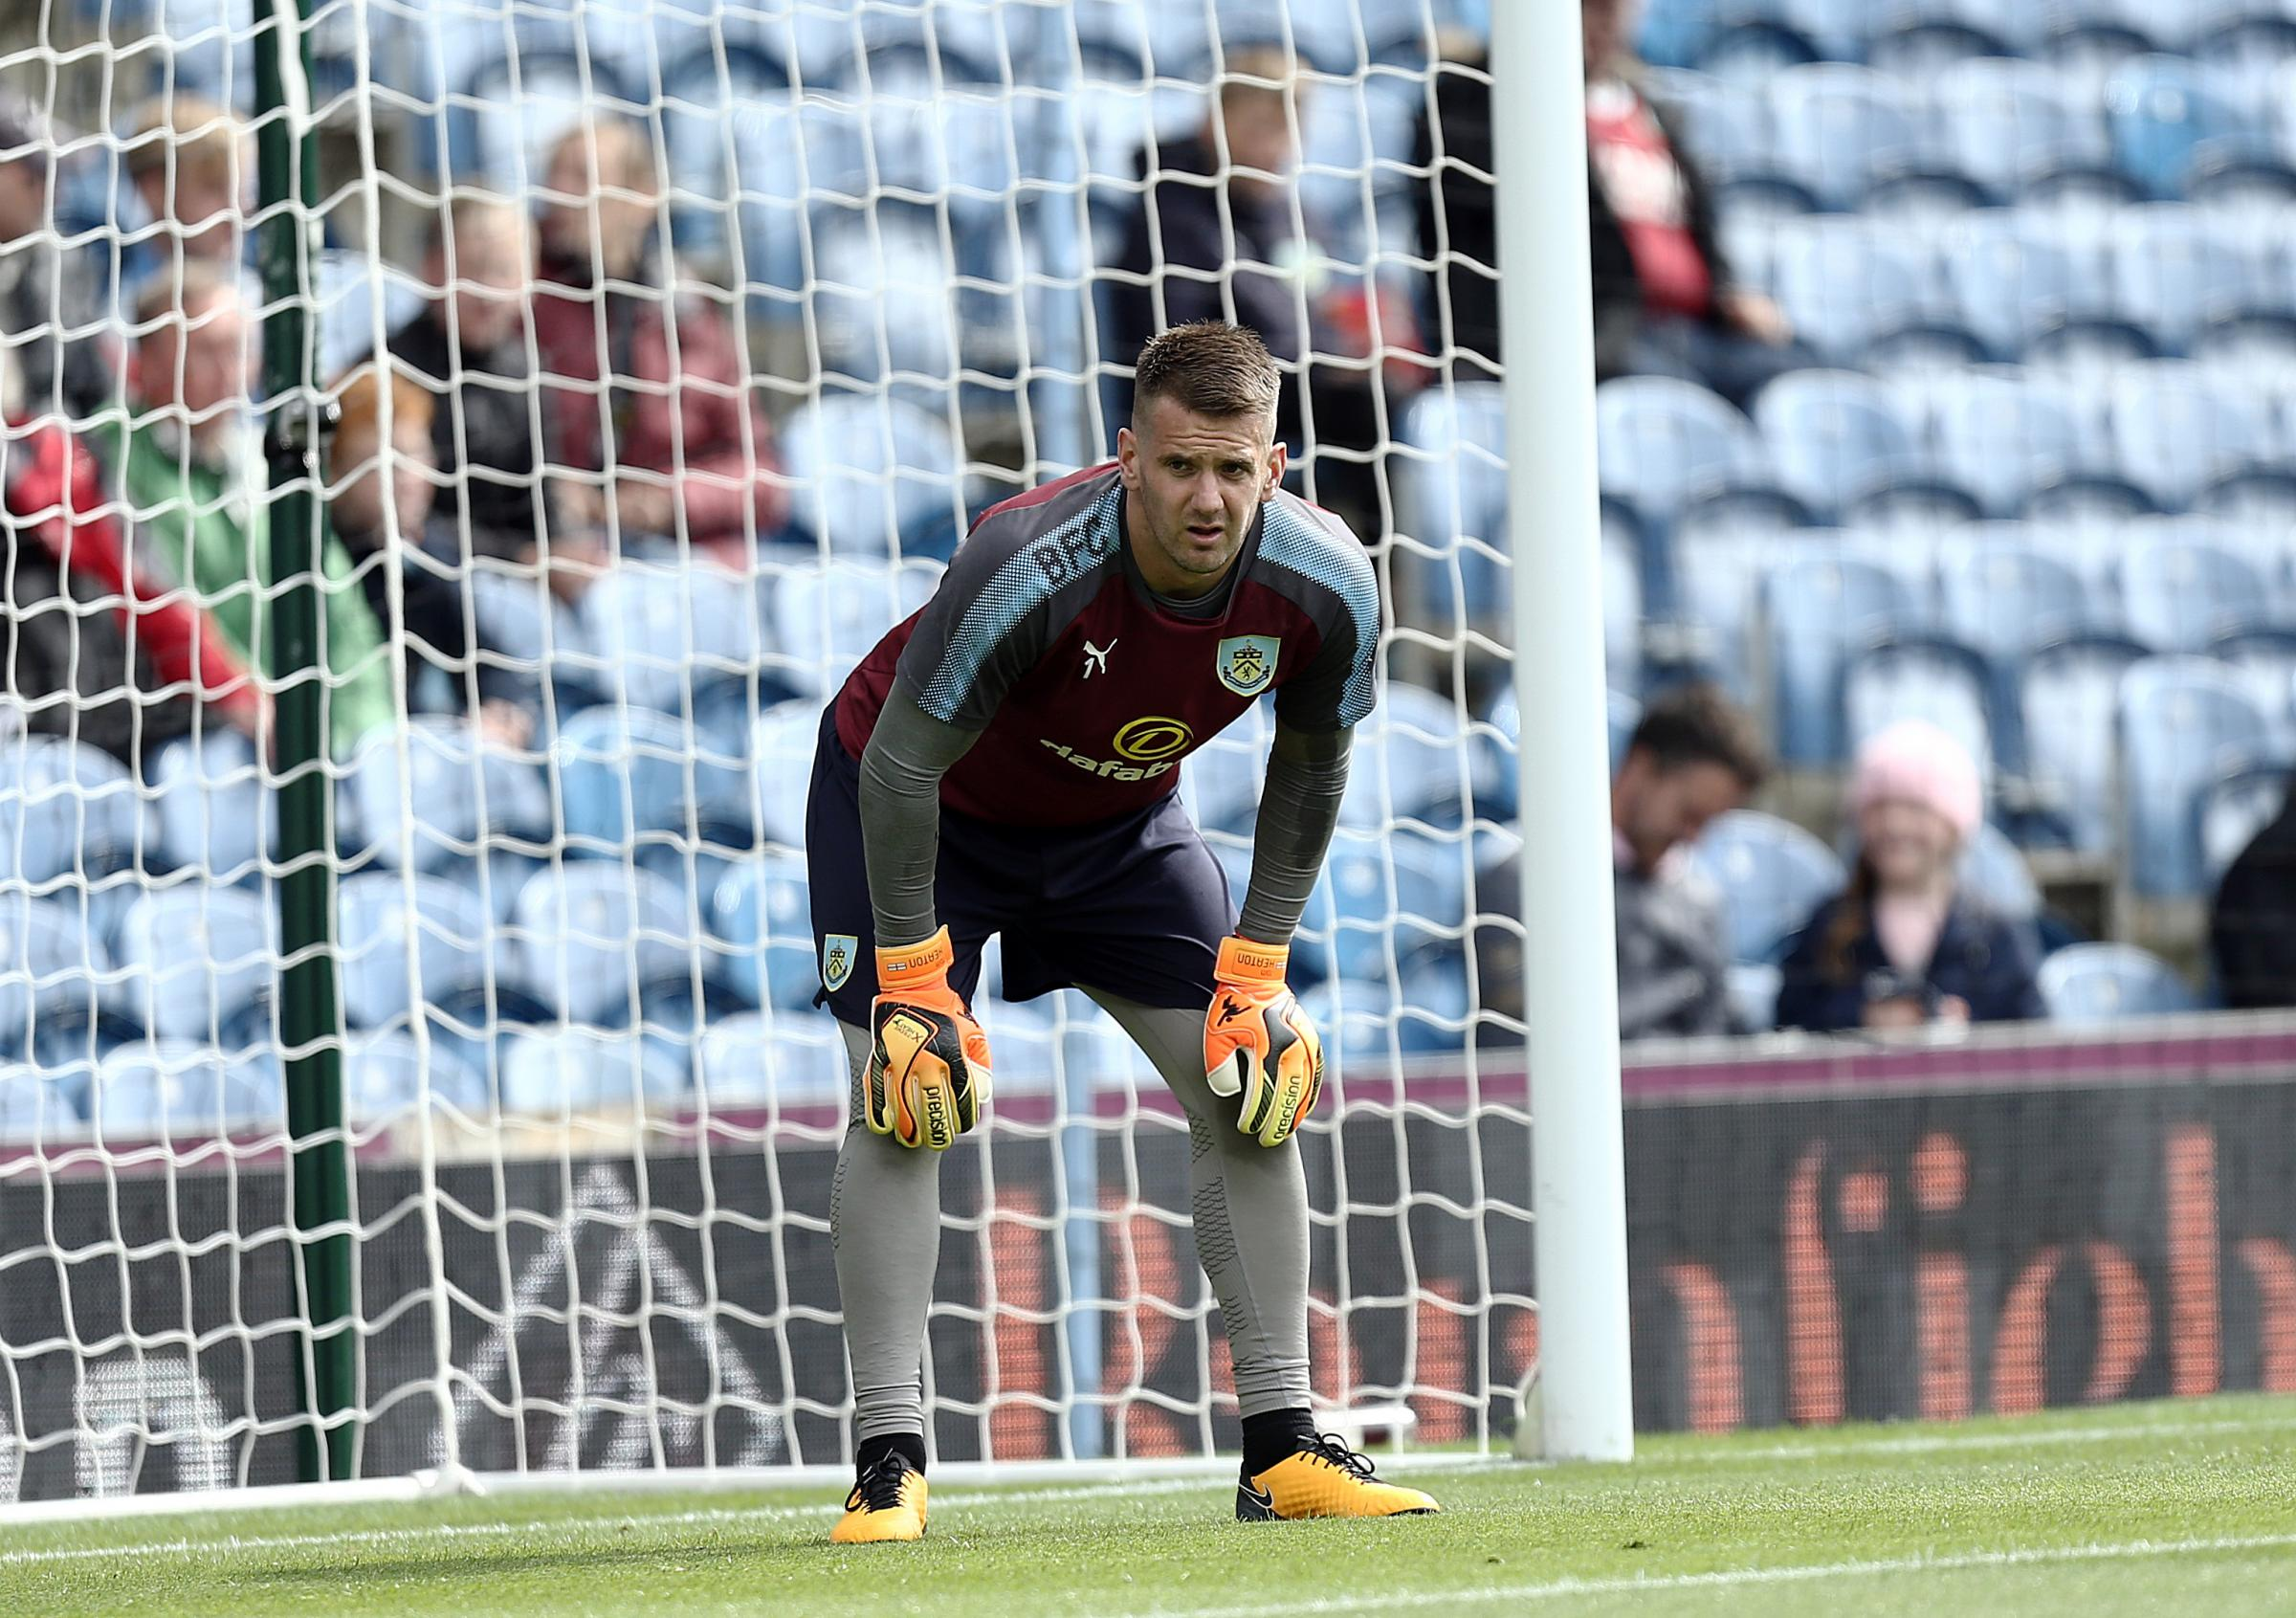 Tom Heaton is ready for a tough week in Cork